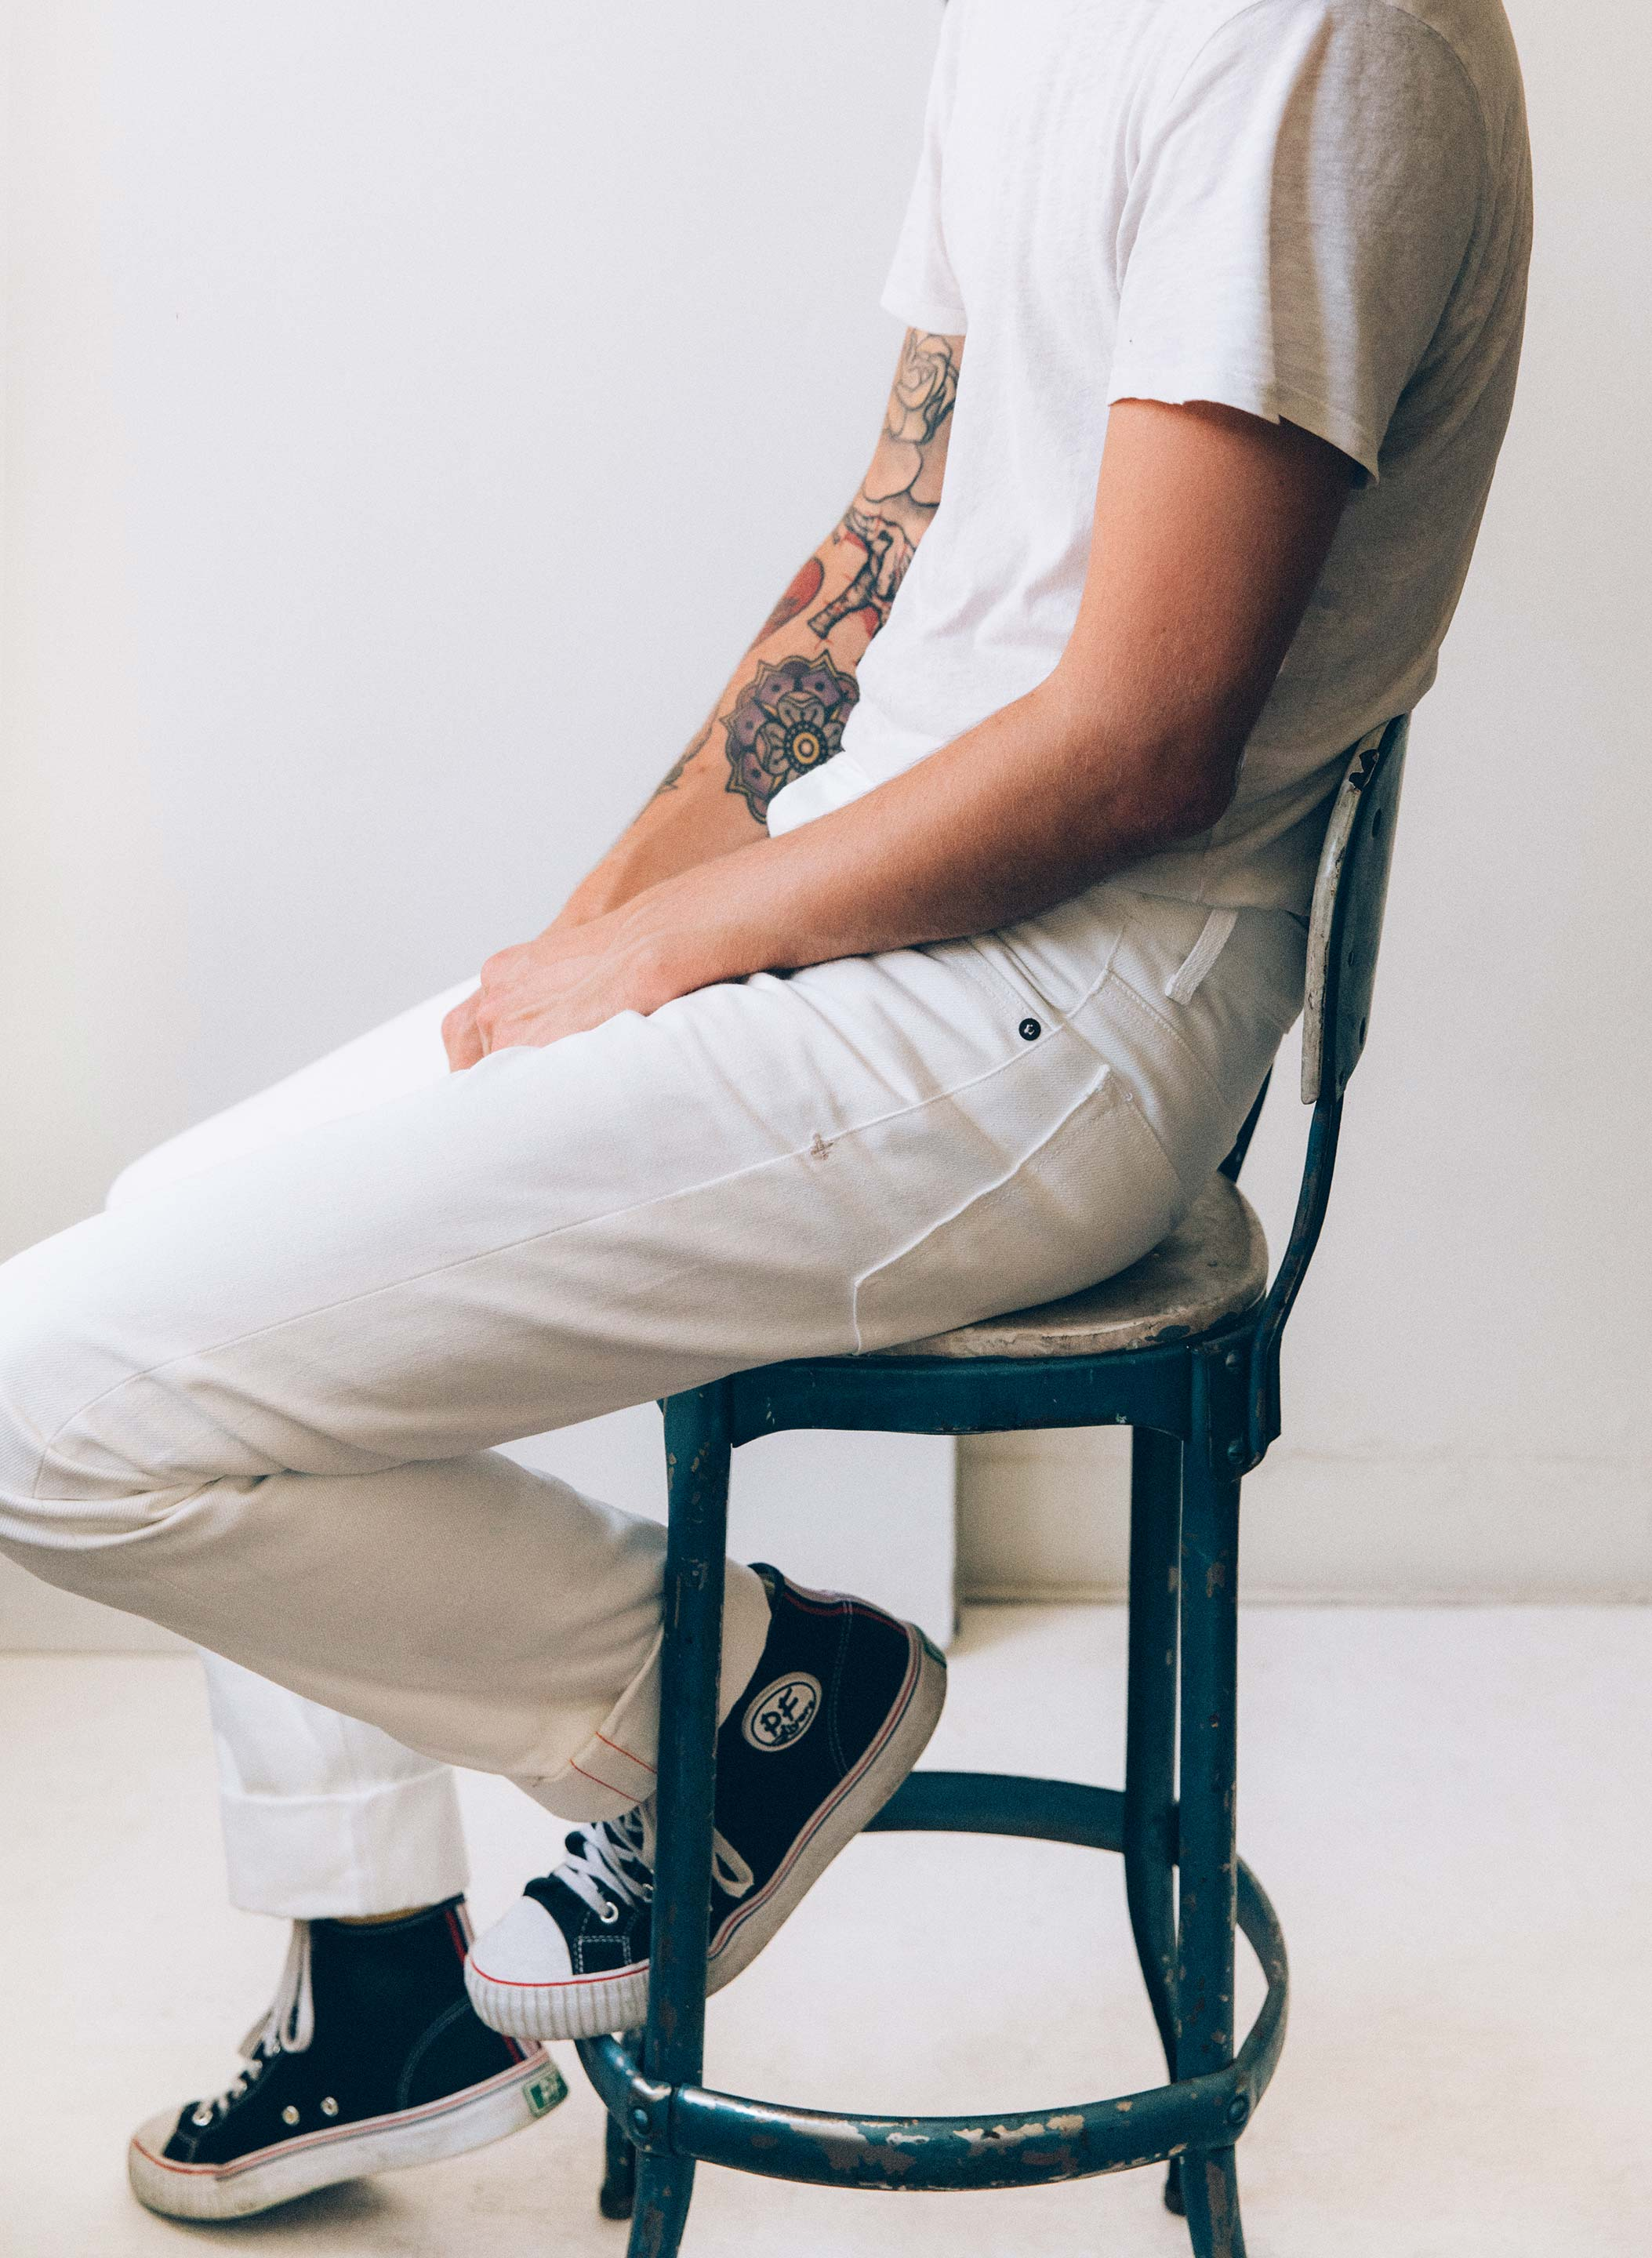 imogene + willie - barton slim white selvage